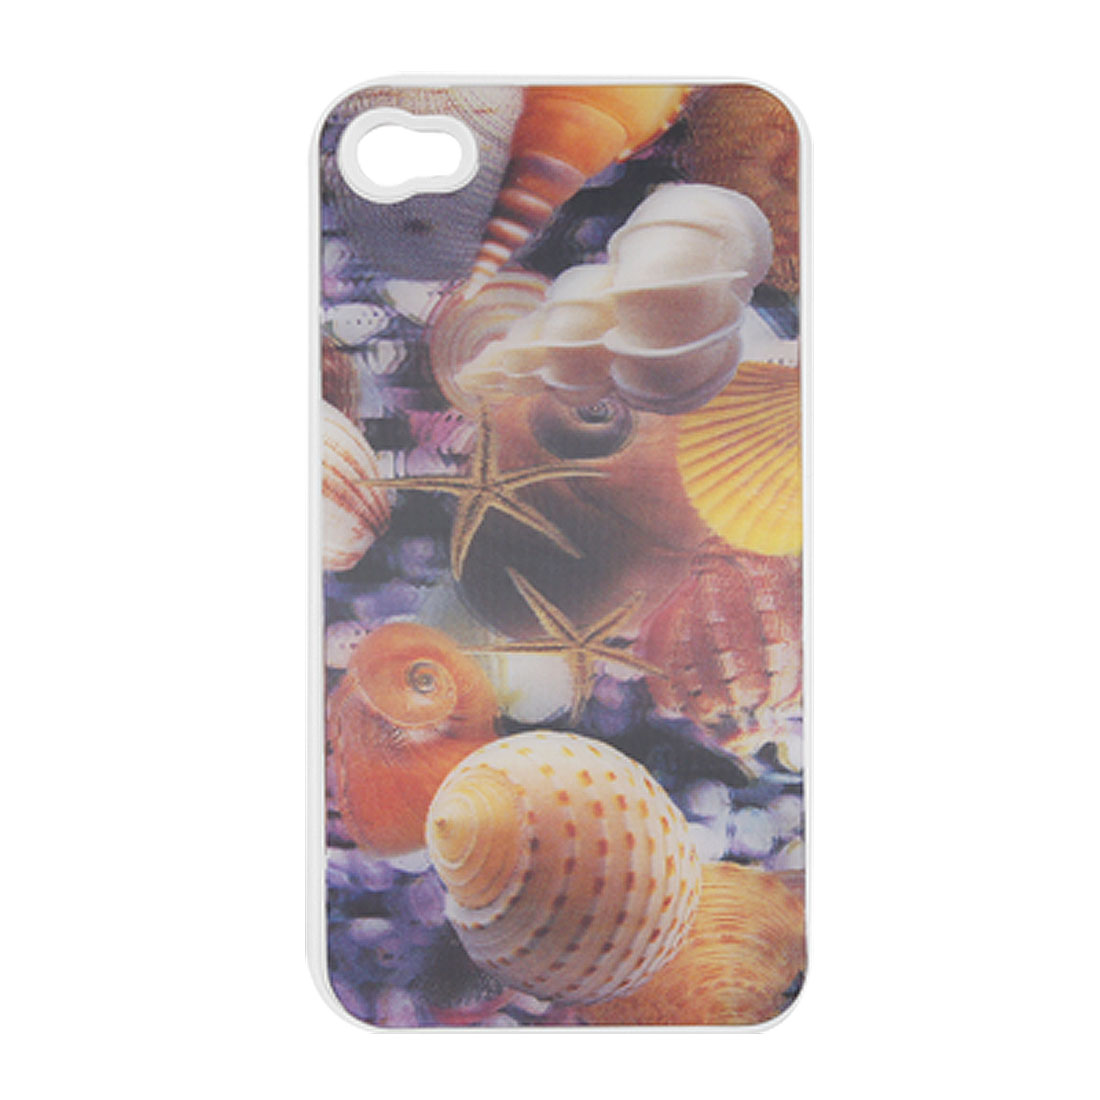 Halobios 3D Colorful Plastic Back Case for iPhone 4 4G